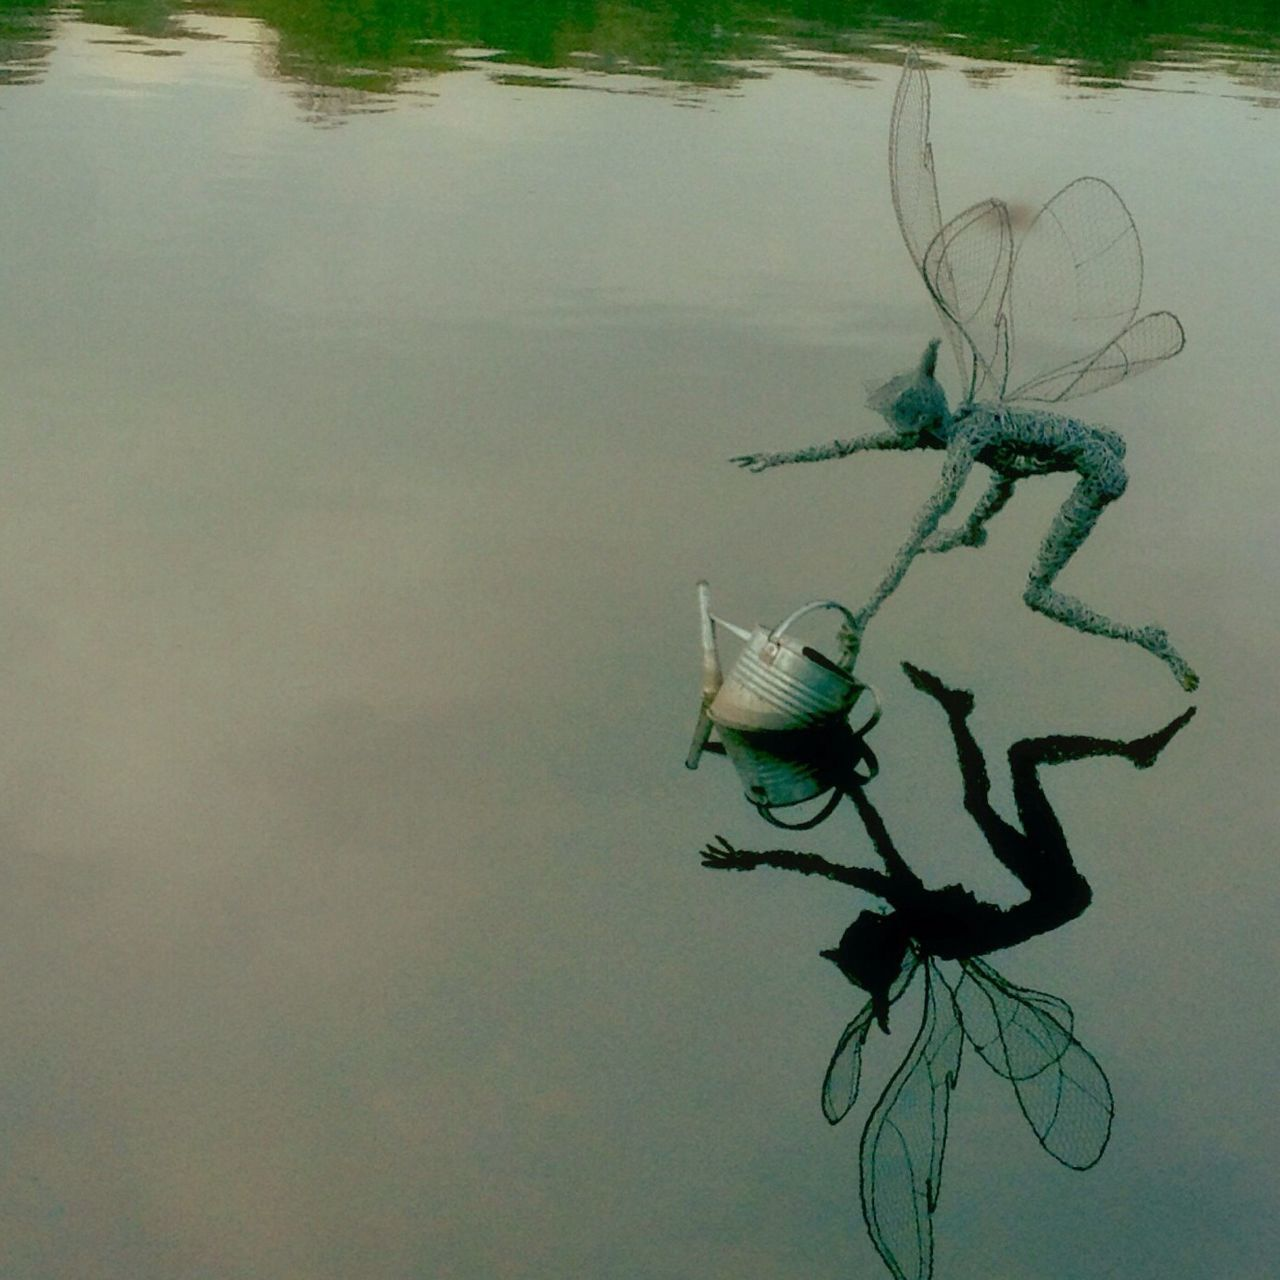 Reflection Of Sculpture On Water